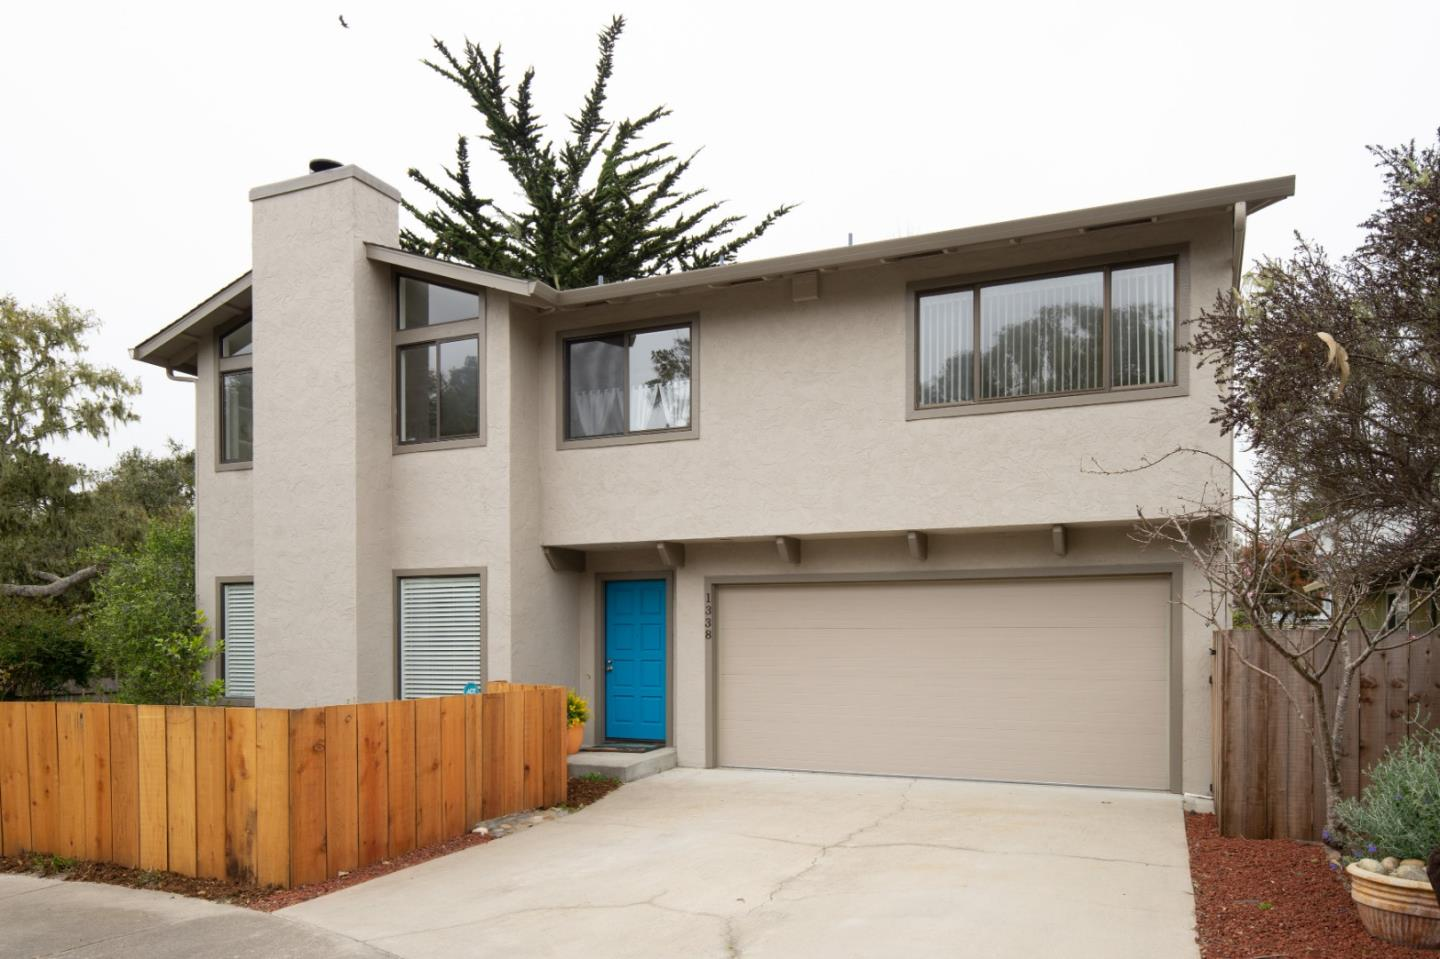 Detail Gallery Image 1 of 1 For 1338 Lincoln Ave, Pacific Grove, CA, 93950 - 3 Beds | 2/1 Baths